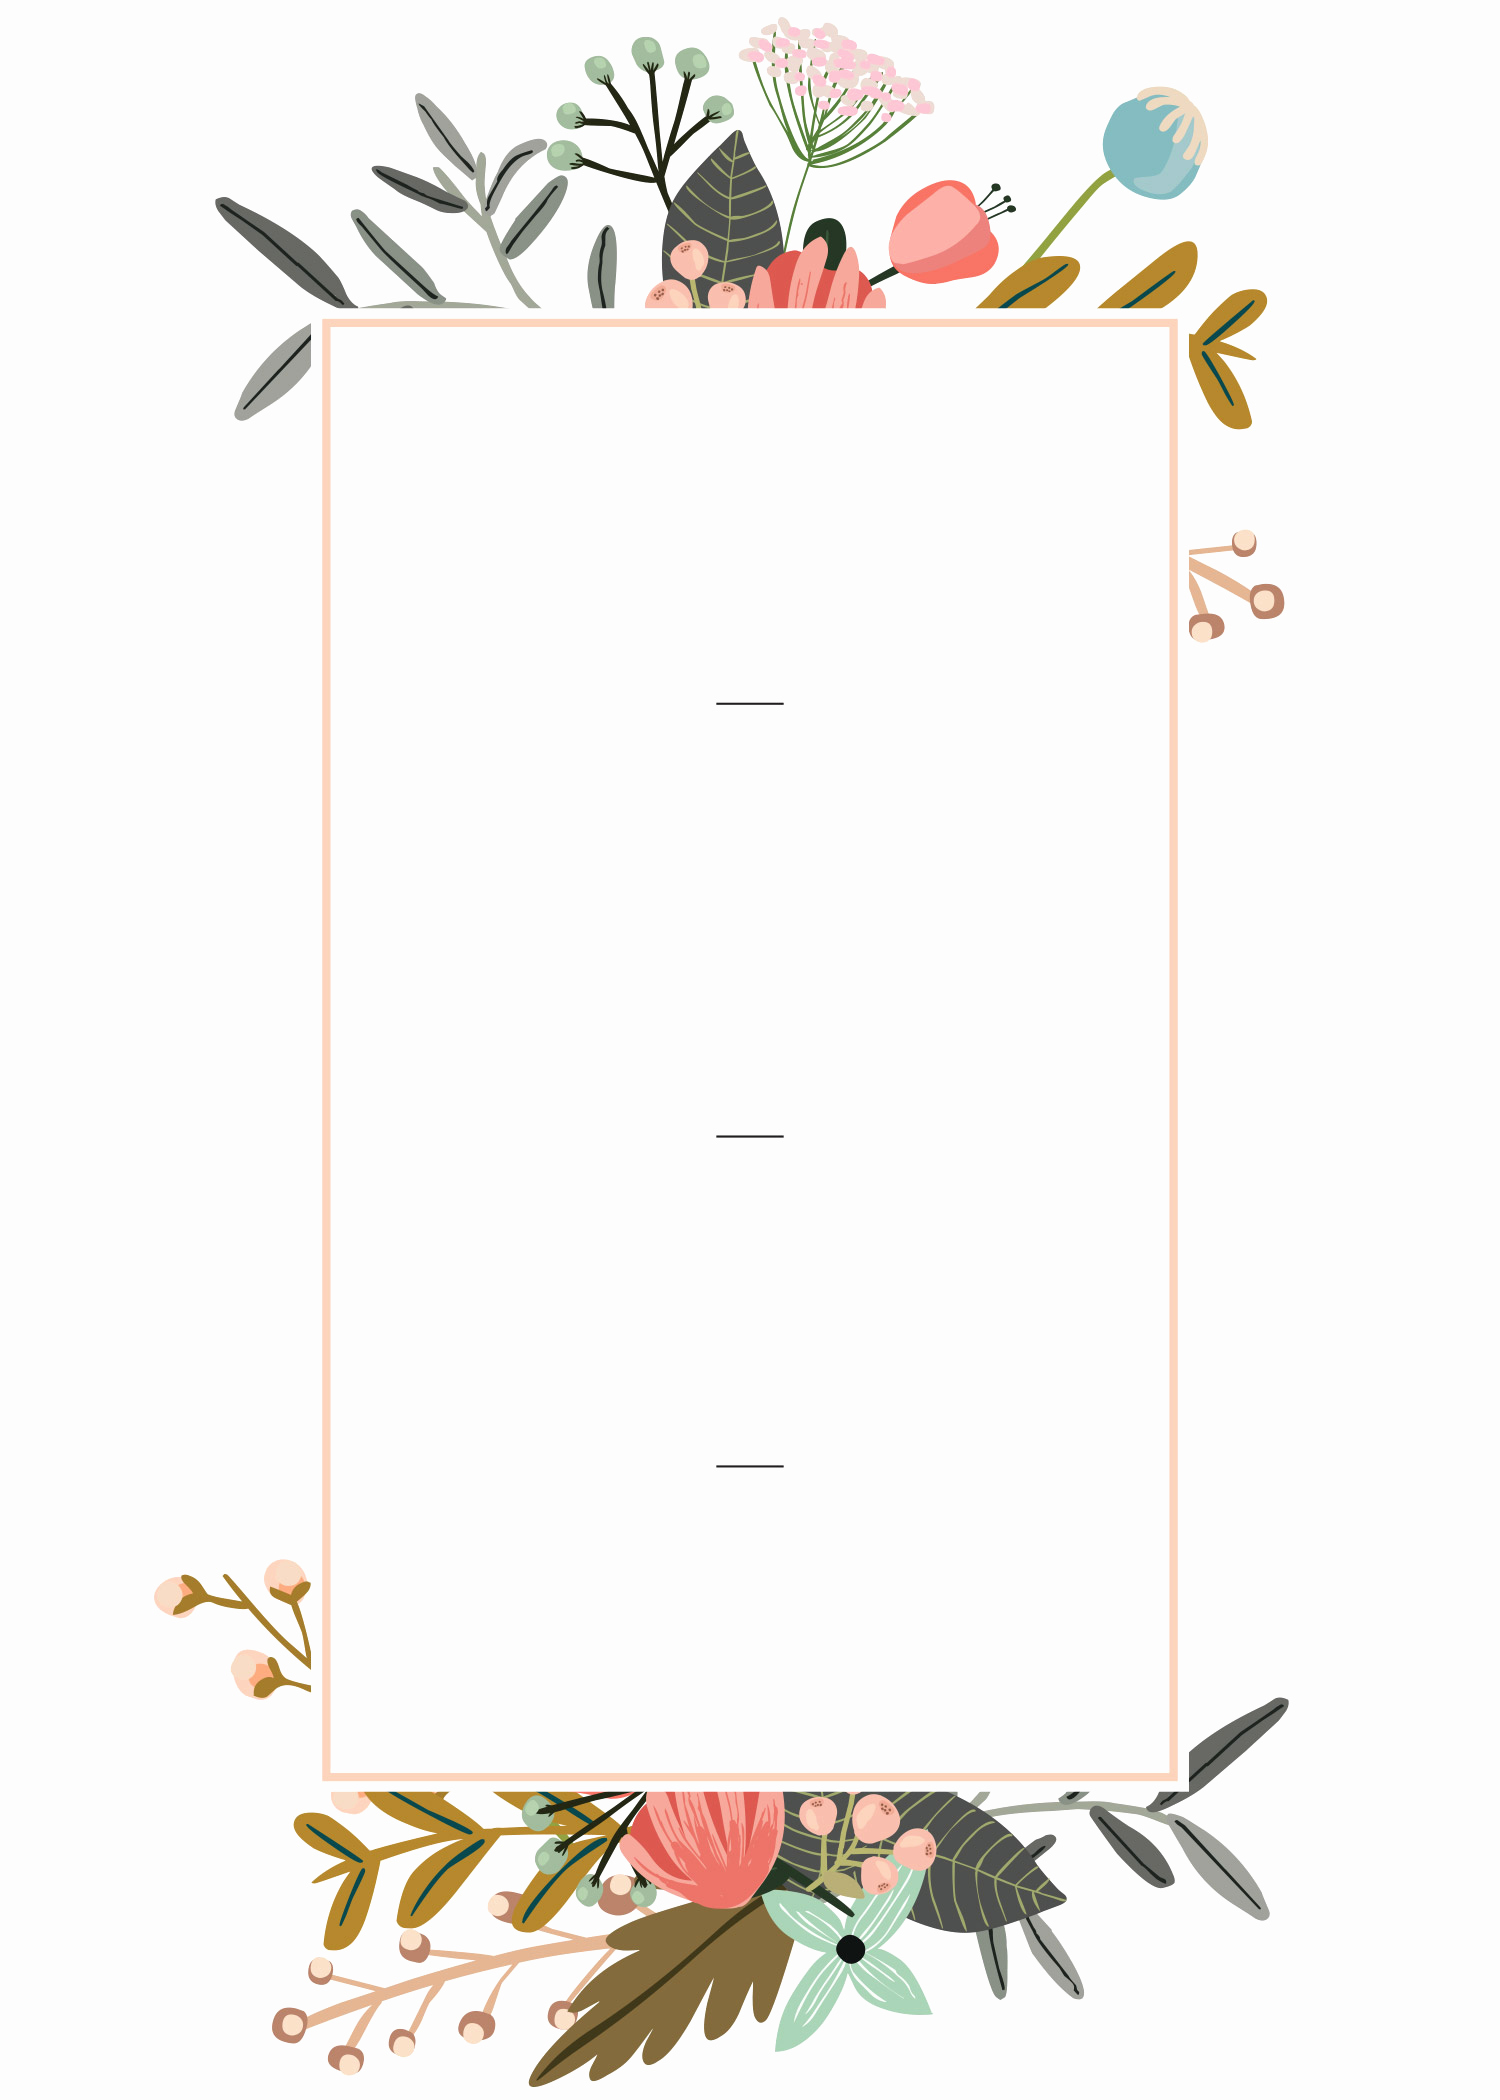 Wedding Invitation Templates Downloads Inspirational Editable Wedding Invitation Templates for the Perfect Card